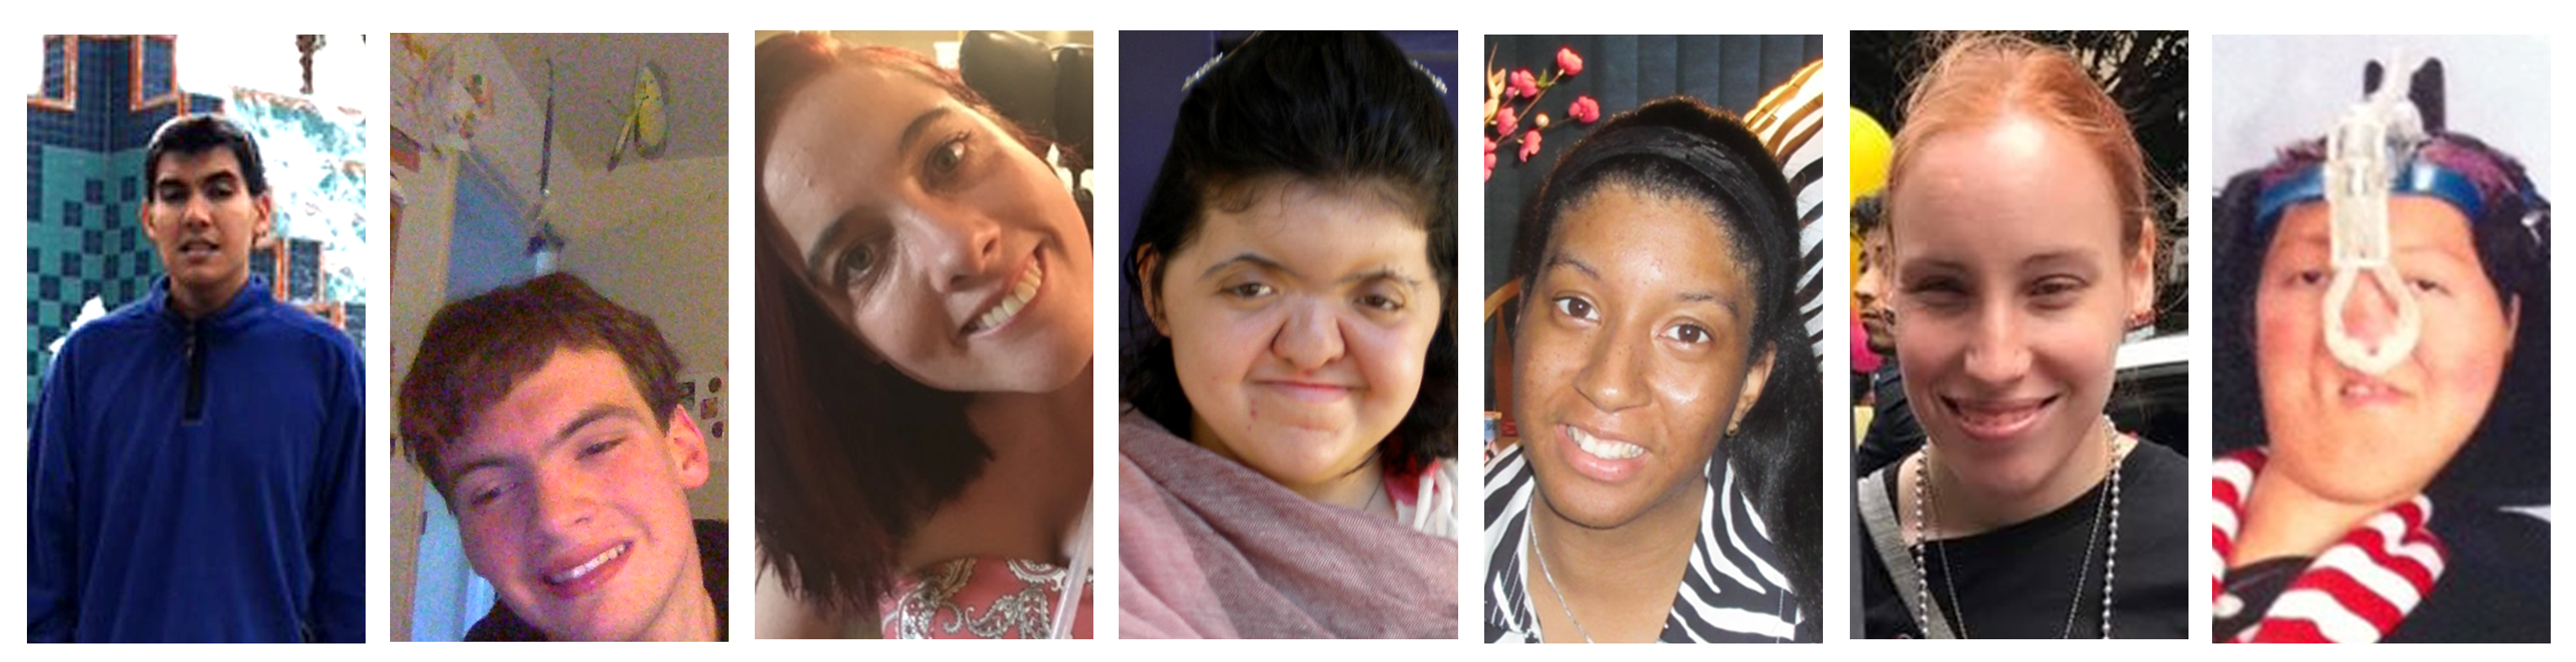 Photos of the 7 YAC Members: (L-R) Armand B., Ian D., Alexa M., Sara M., Alise S., Tiffany T., Priscilla W.